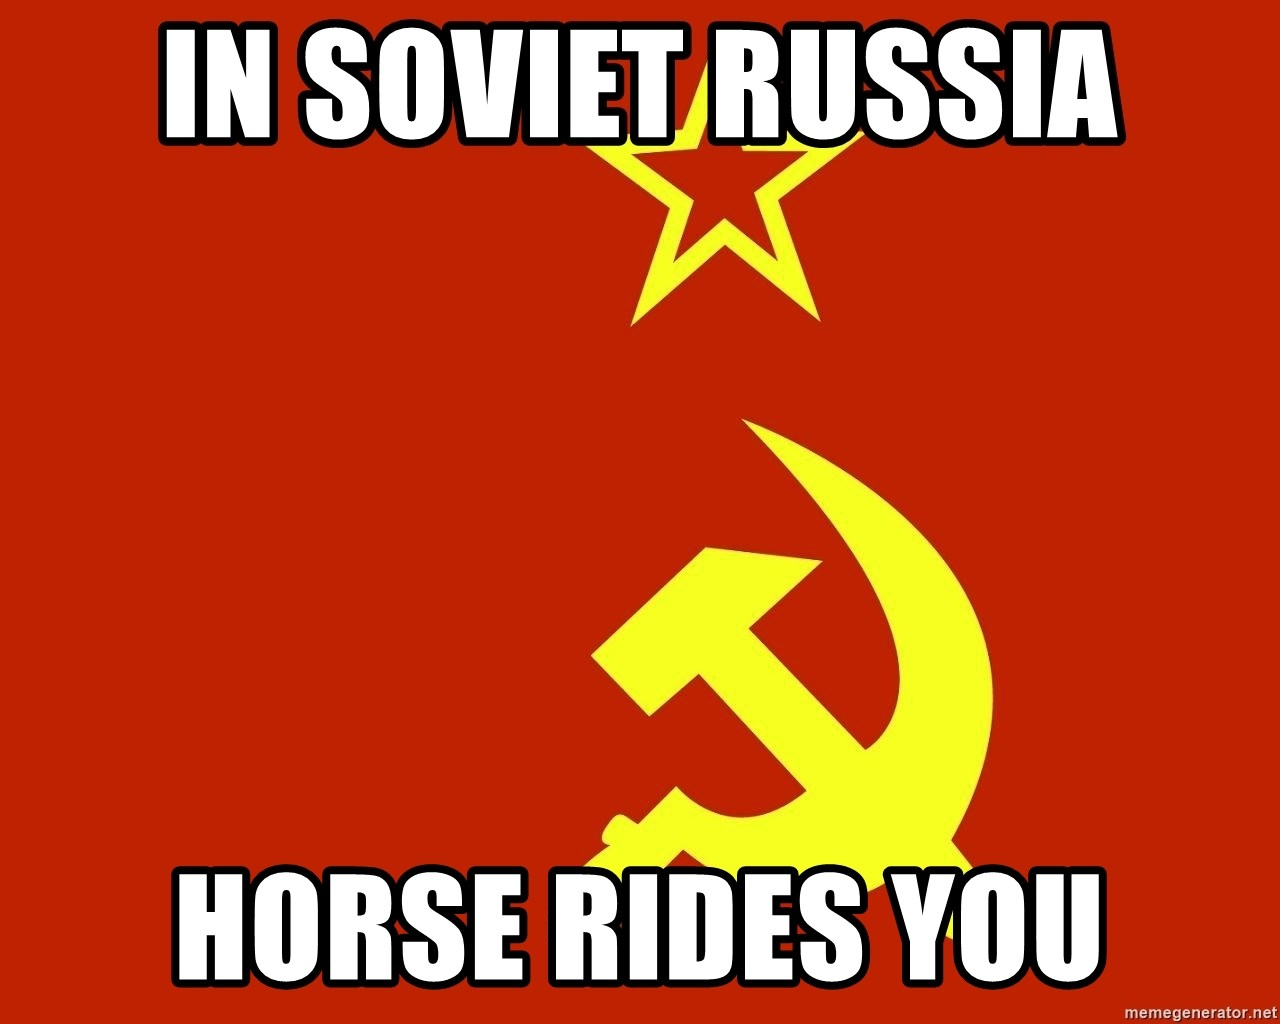 In Soviet Russia - in soviet russia horse rides you